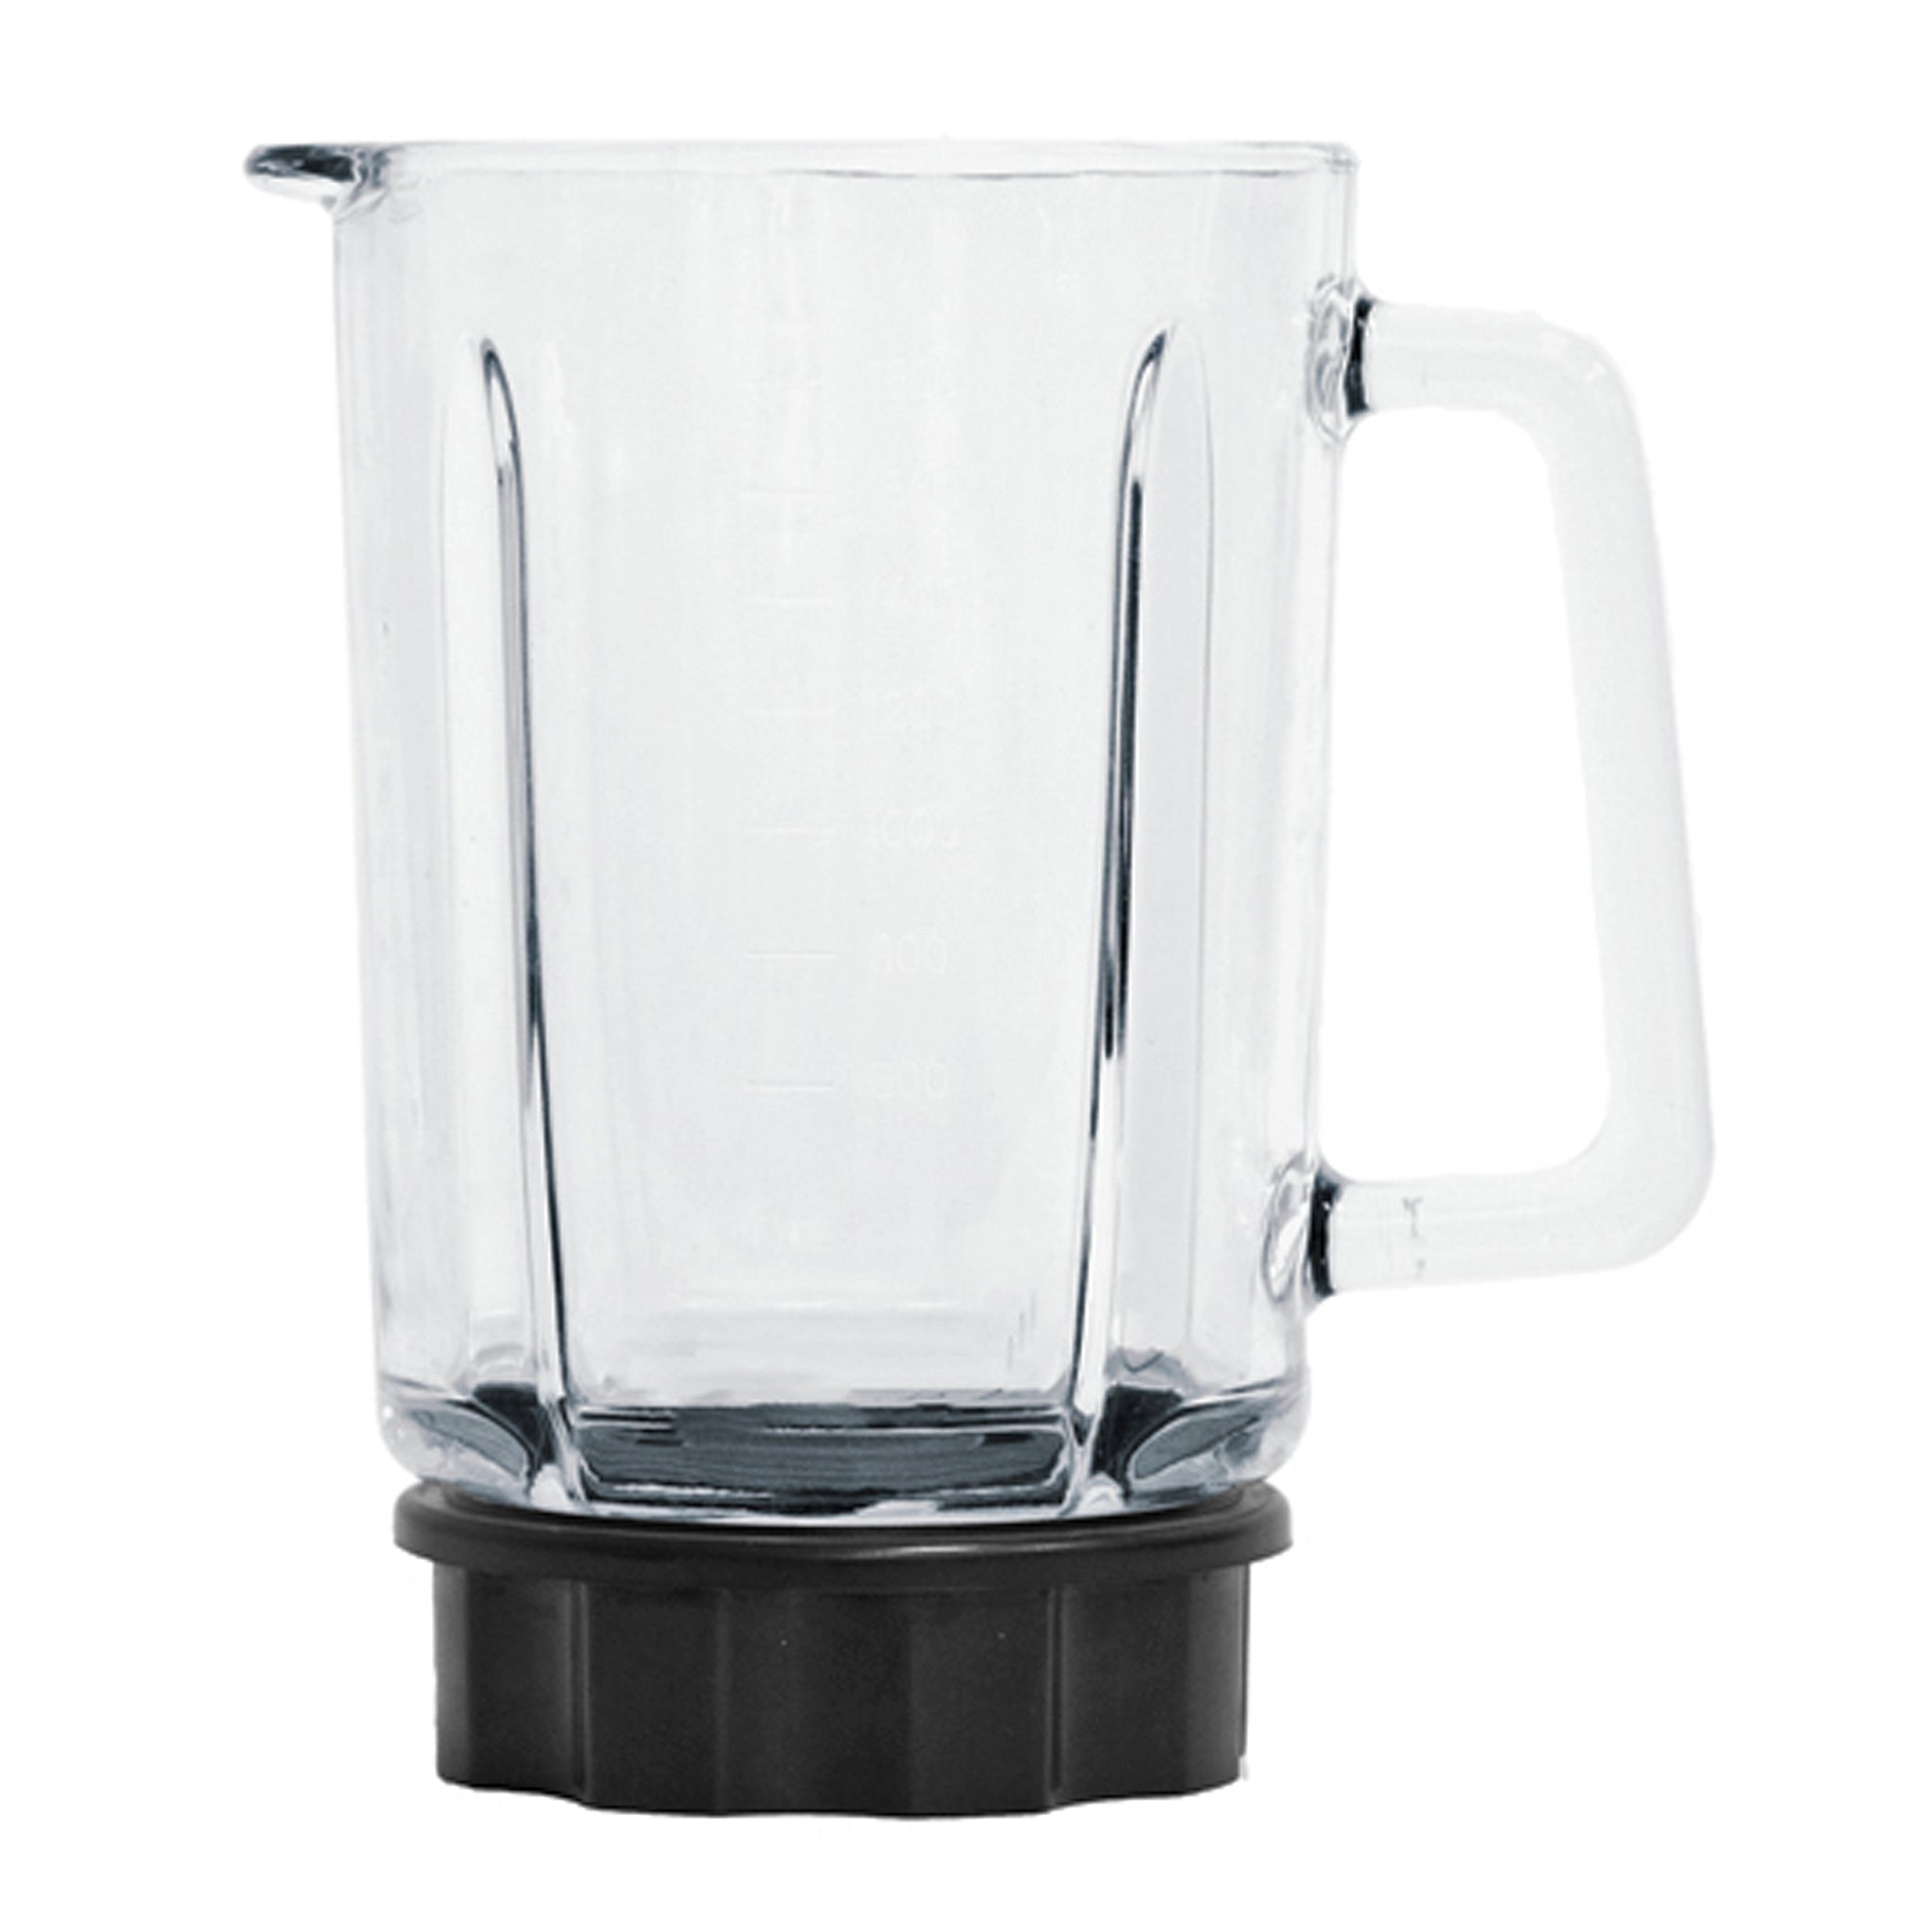 Tempered Glass Carafe/Pitcher for the Dynablend® Clean Blender (DB-950-A). Blade not included.